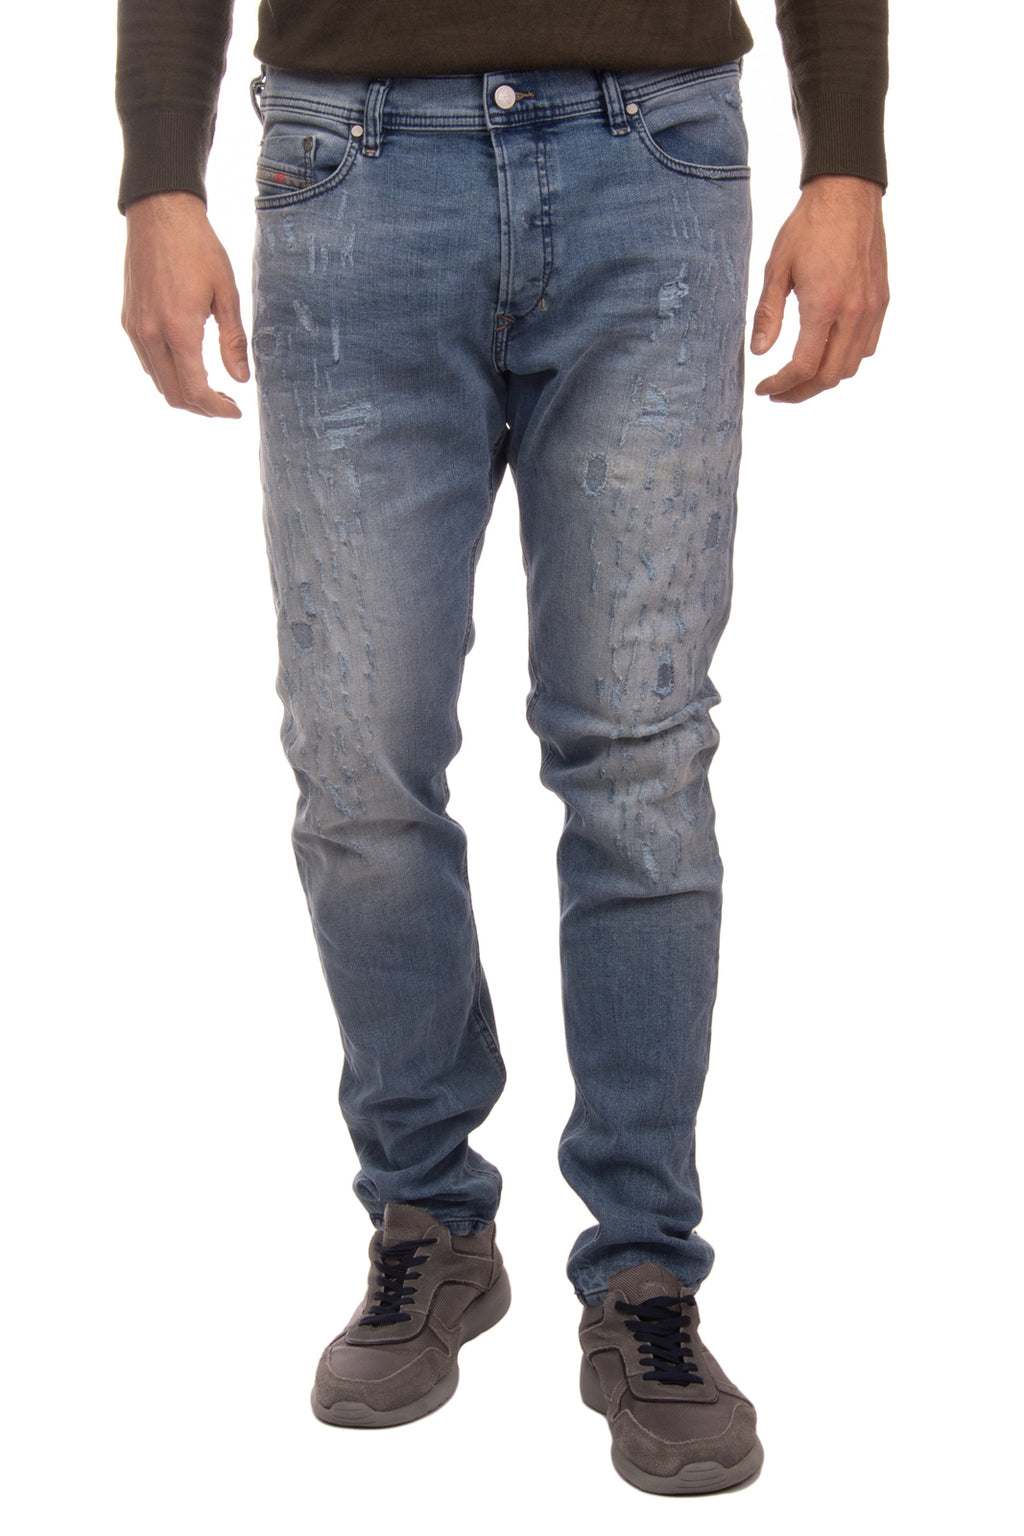 DIESEL Jeans W34 L34 Ripped Faded Patched Inside Carrot TEPPHAR 084QS STRETCH